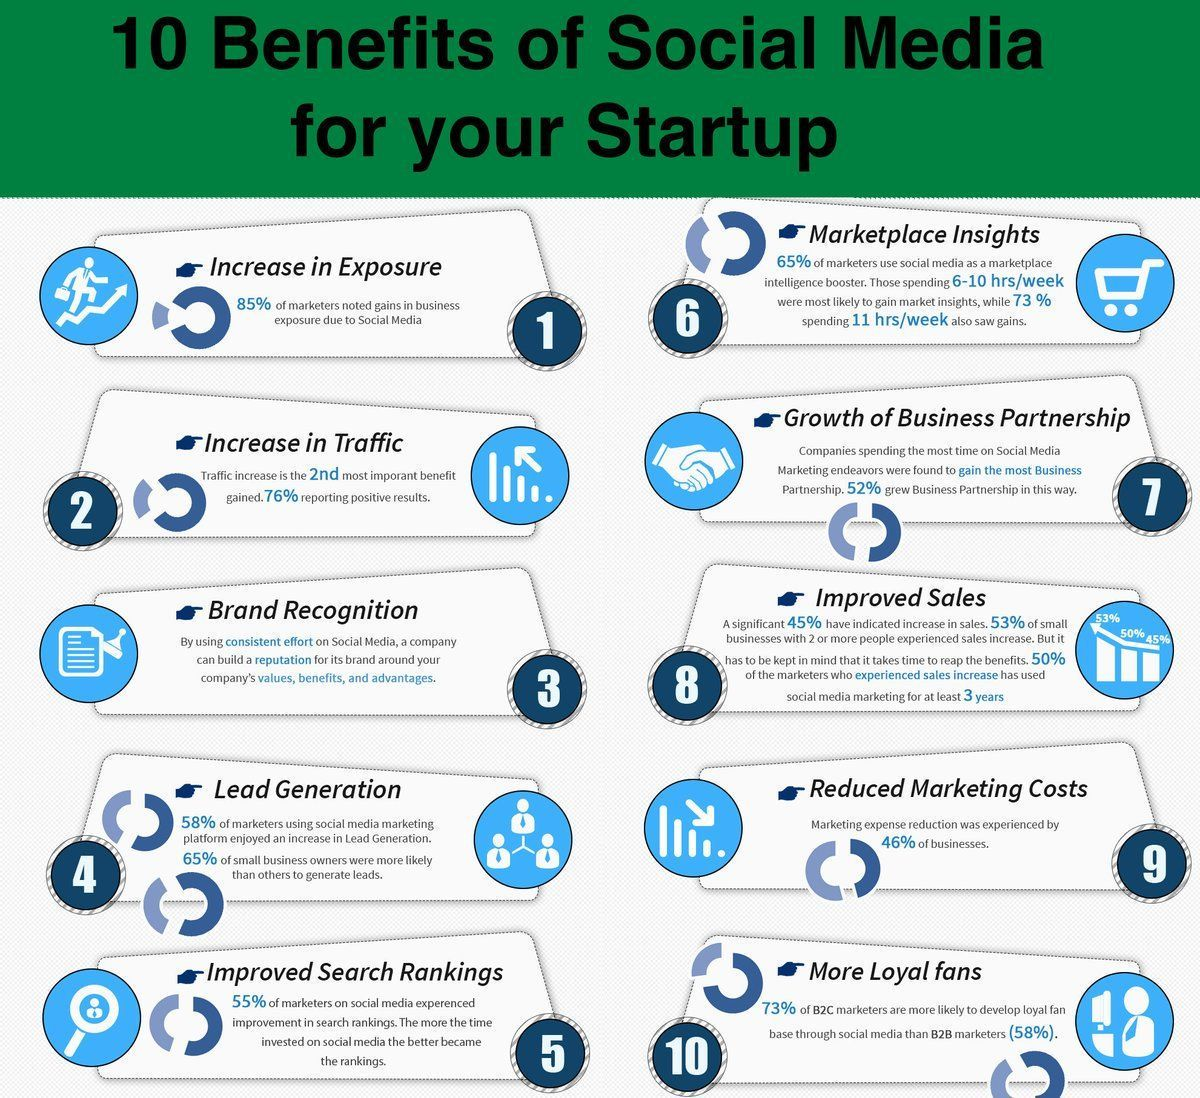 10 Benefits of #SocialMedia for Your #Startup Success [Infographic] #SMM #SocialMediaMarketing #LeadGeneration #Sales #SEO mt @ipfconline1<br>http://pic.twitter.com/OV7msLM6VK